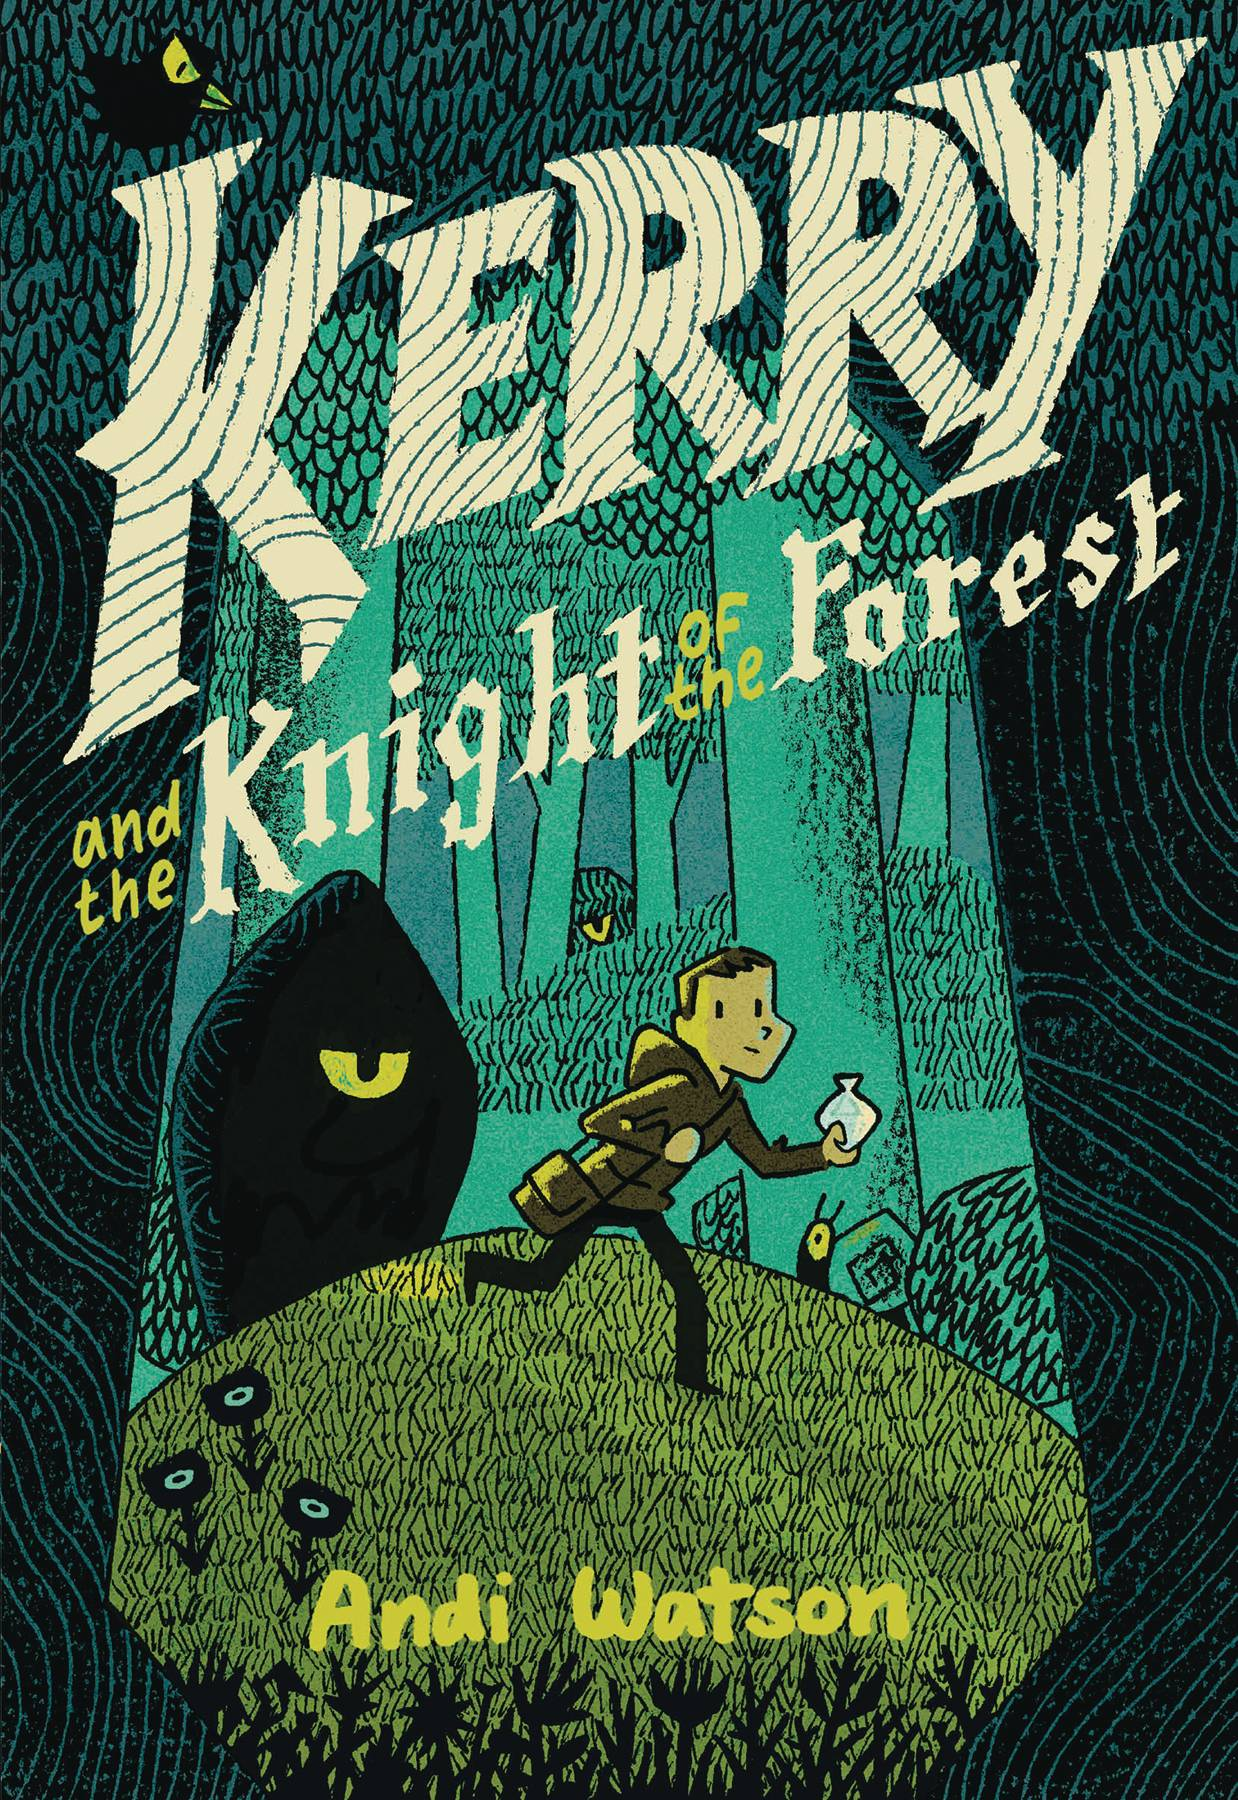 KERRY AND KNIGHT OF THE FOREST GN